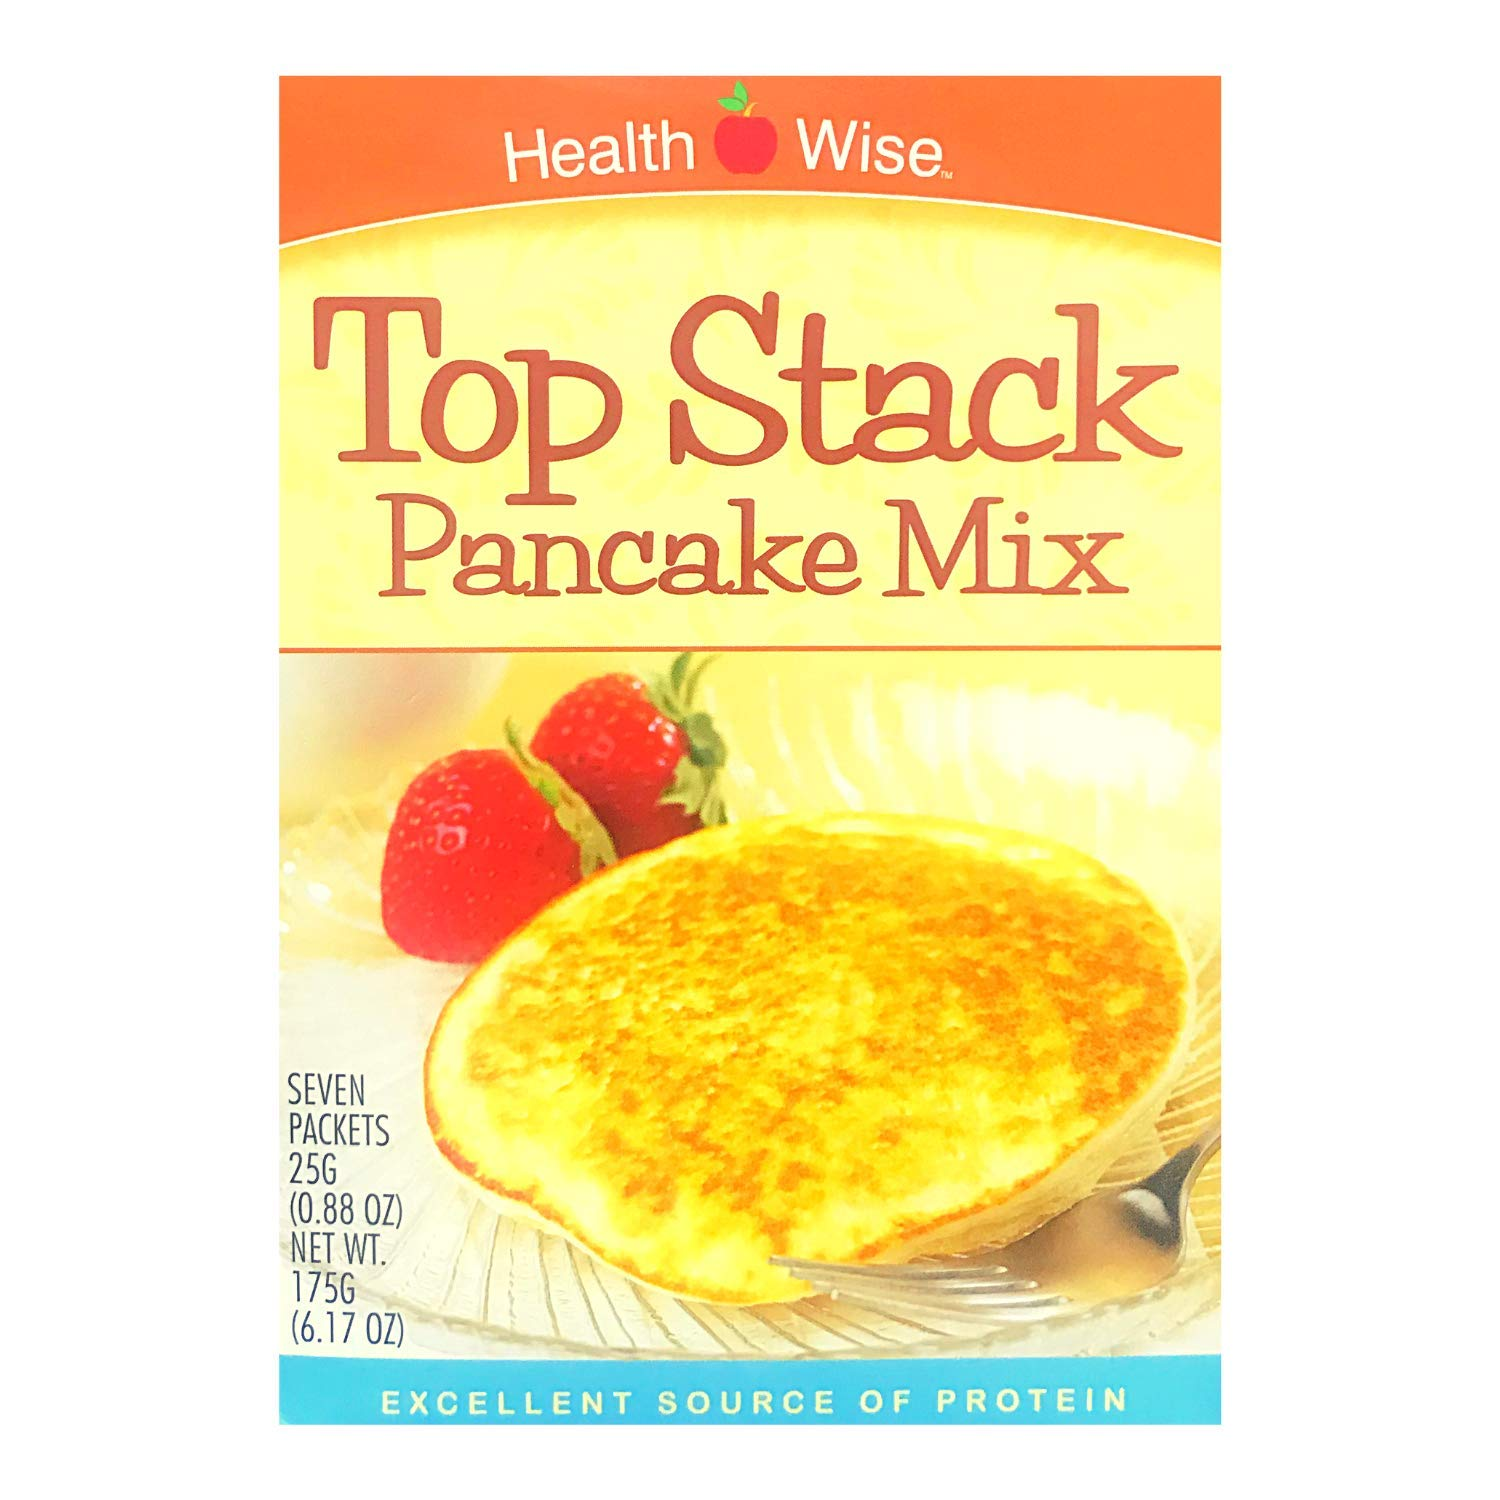 Healthwise trust - Top Stack Pancake Mix Max 42% OFF Appetite Su for Loss Weight